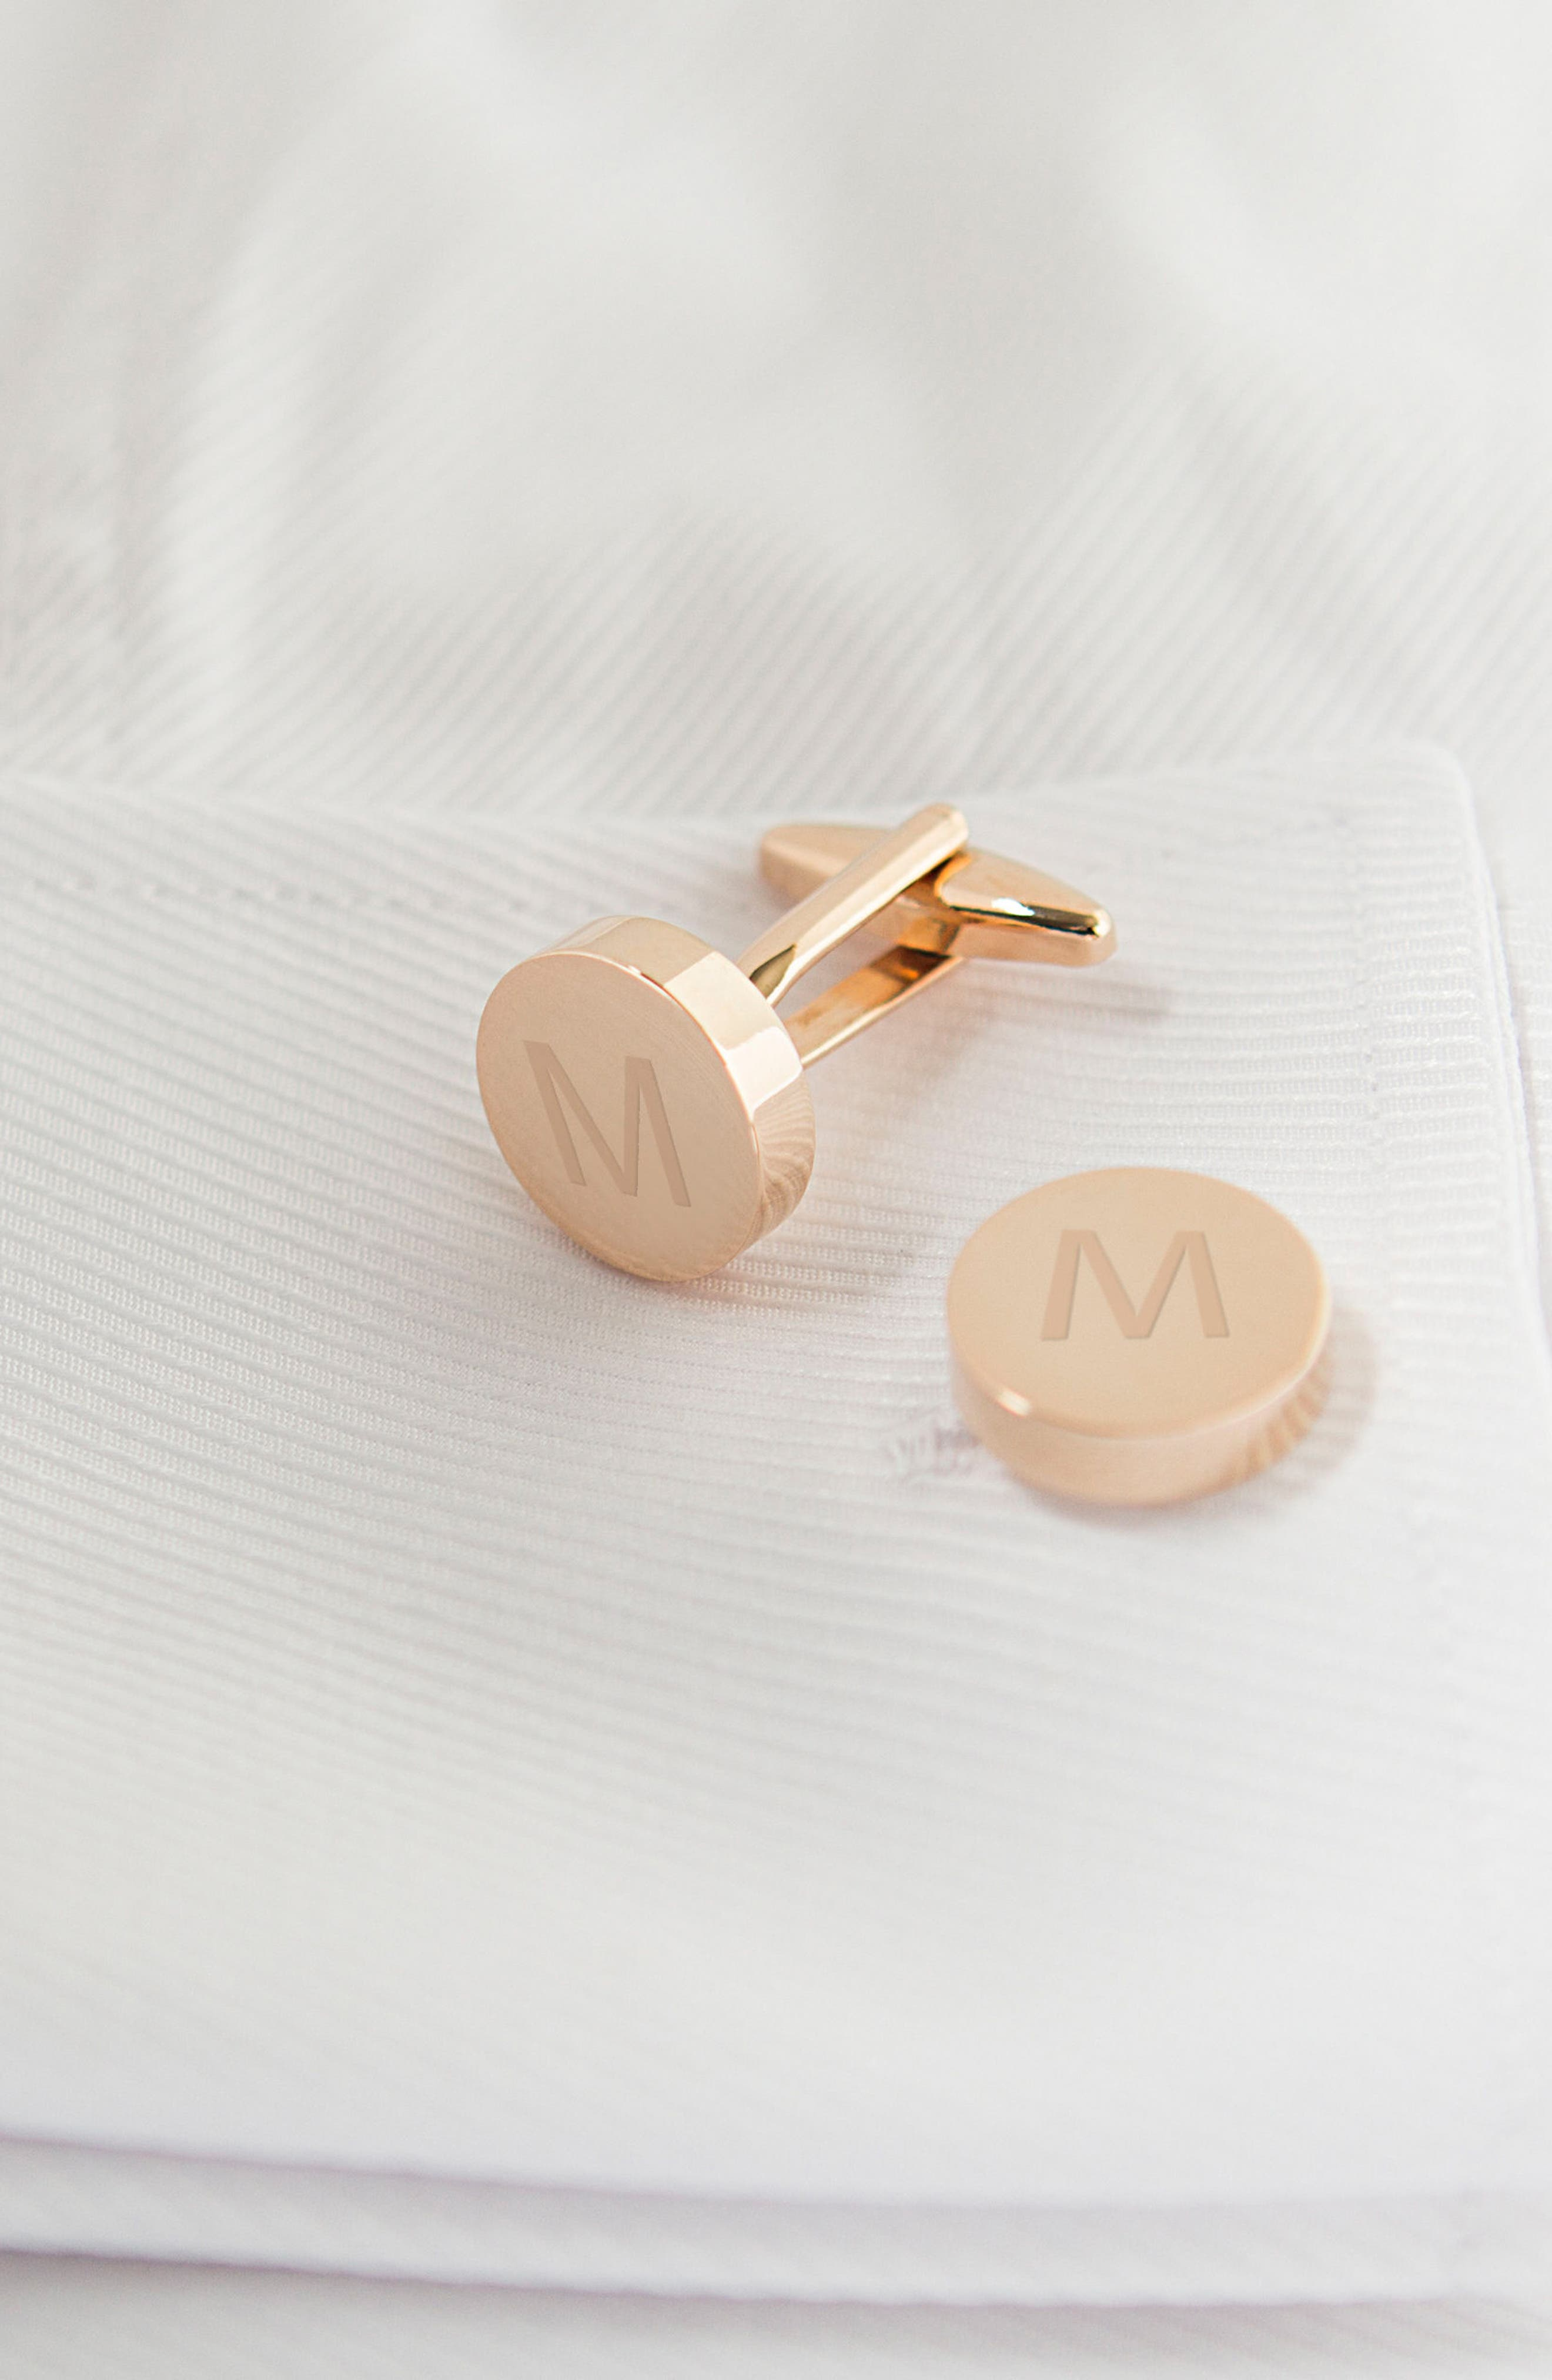 Monogram Cuff Links,                             Alternate thumbnail 4, color,